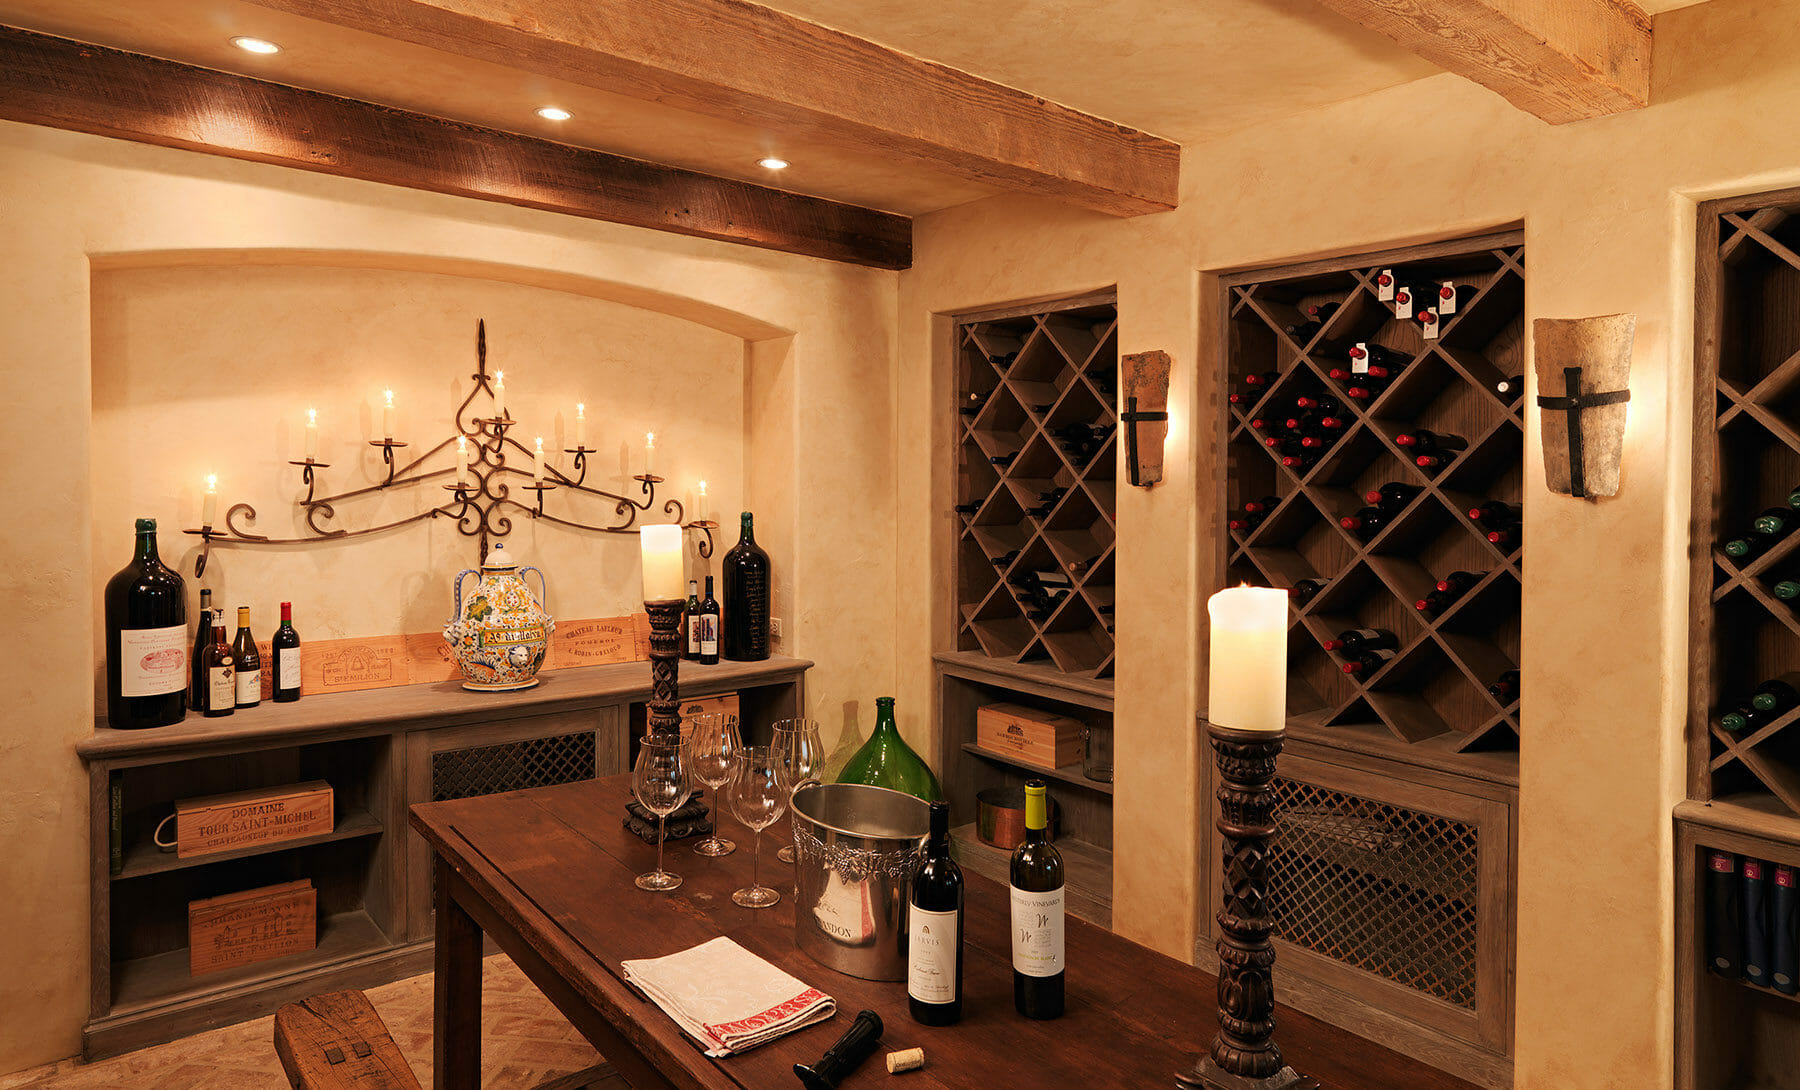 Wine cellar in a home in Albemarle county, designed by Gibson, Magerfield & Edenali Builders.